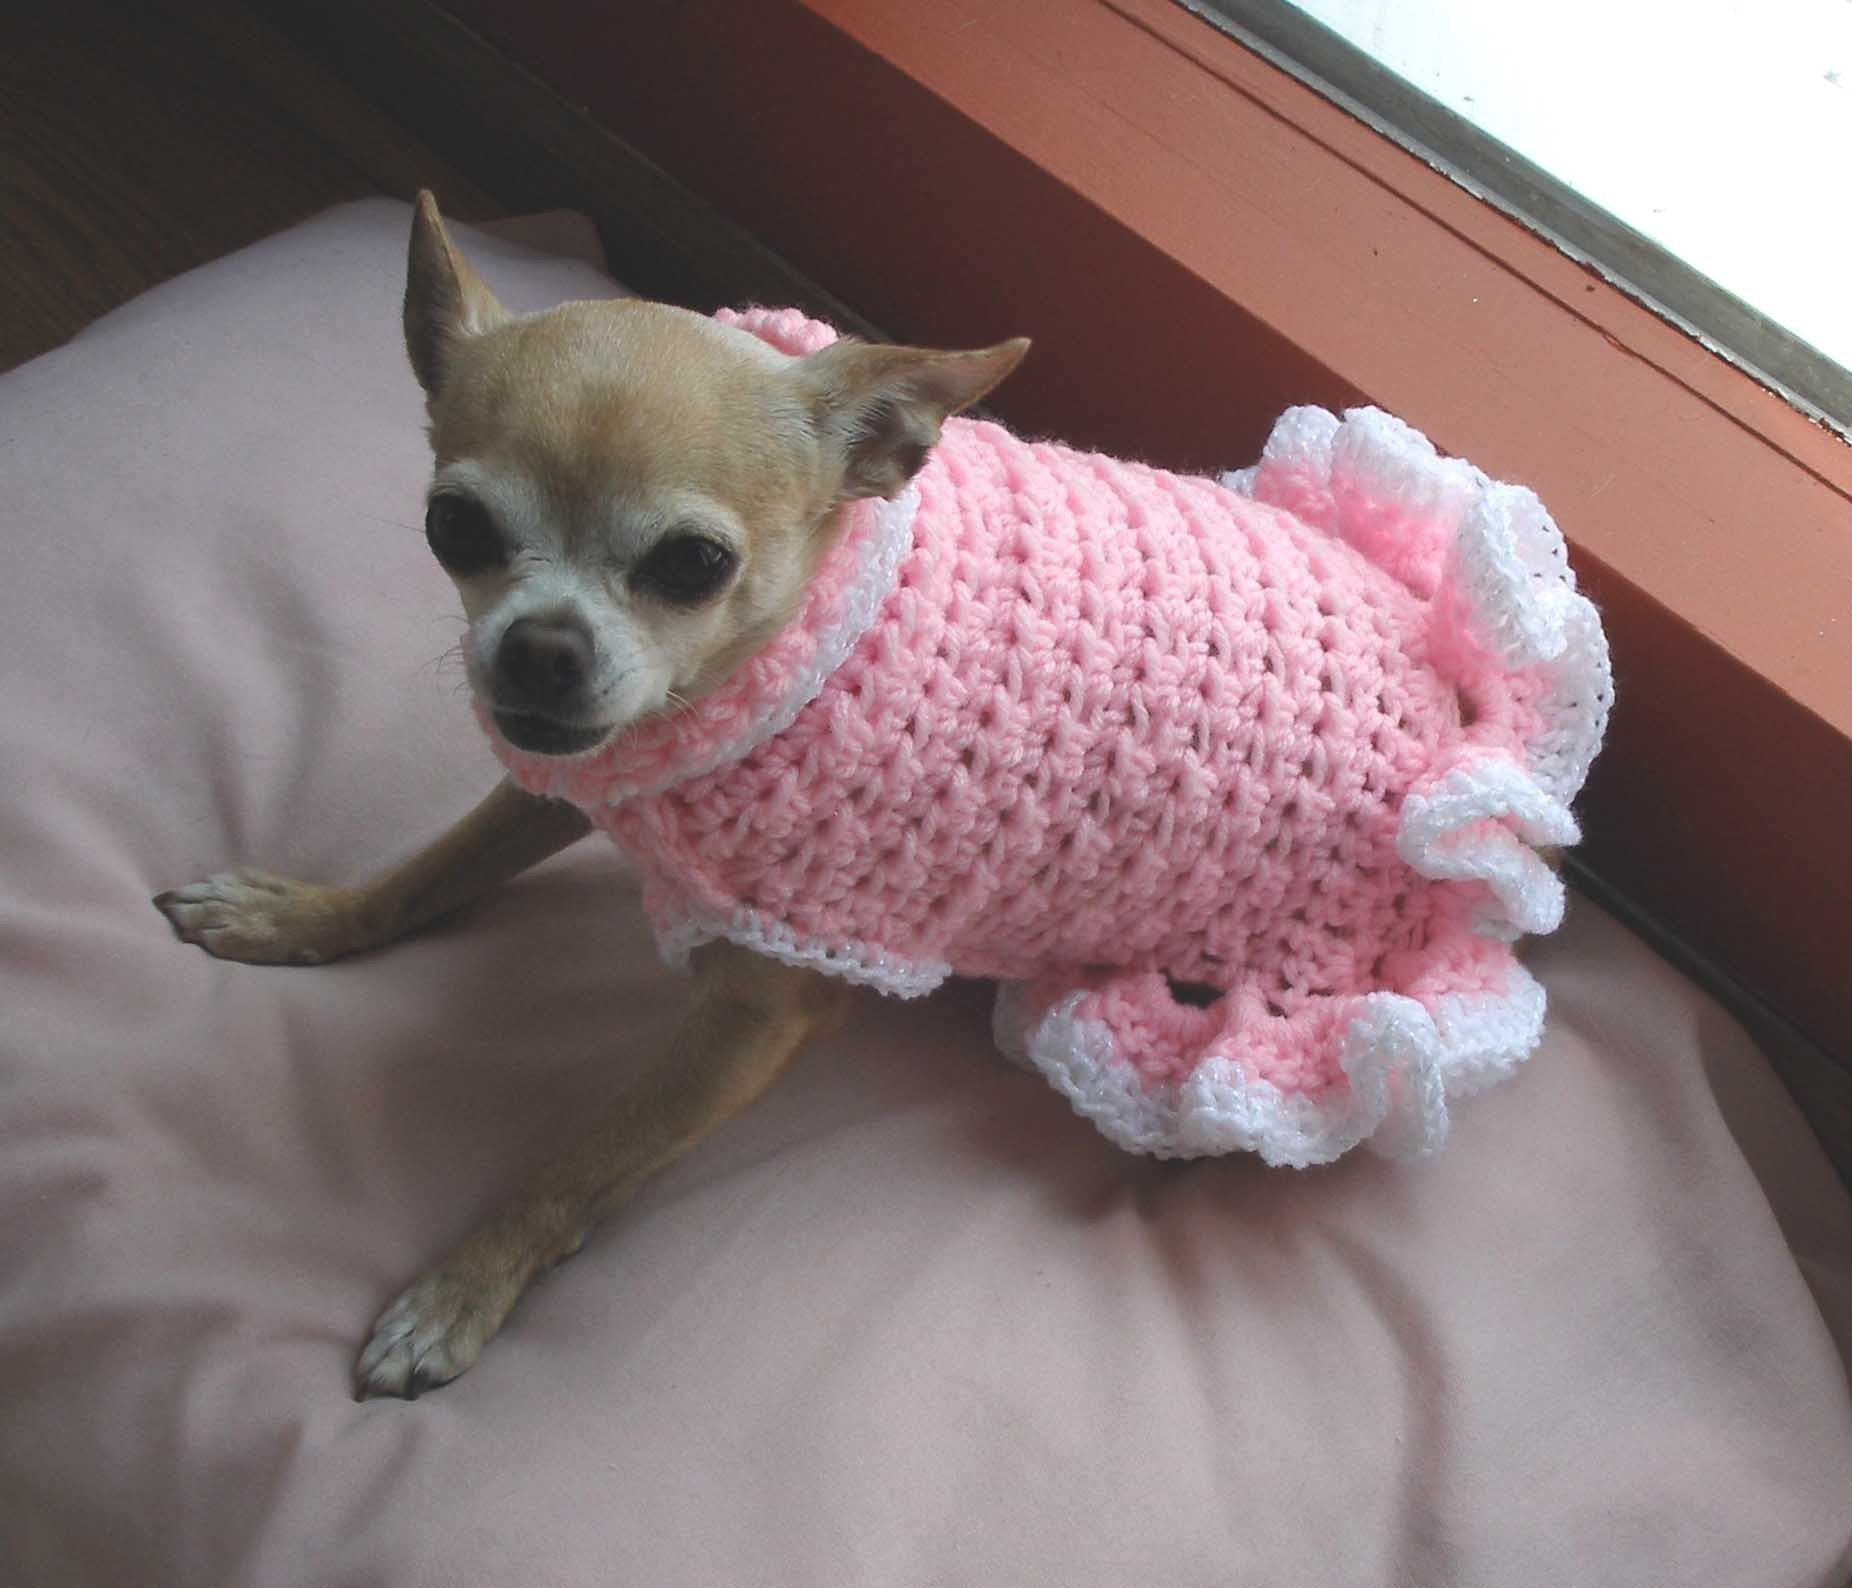 Beautiful Pdf Crochet Pattern Cha Cha Dog Sweater Dress by Ozarknomad Free Crochet Pattern for Small Dog Sweater Of Adorable 48 Images Free Crochet Pattern for Small Dog Sweater